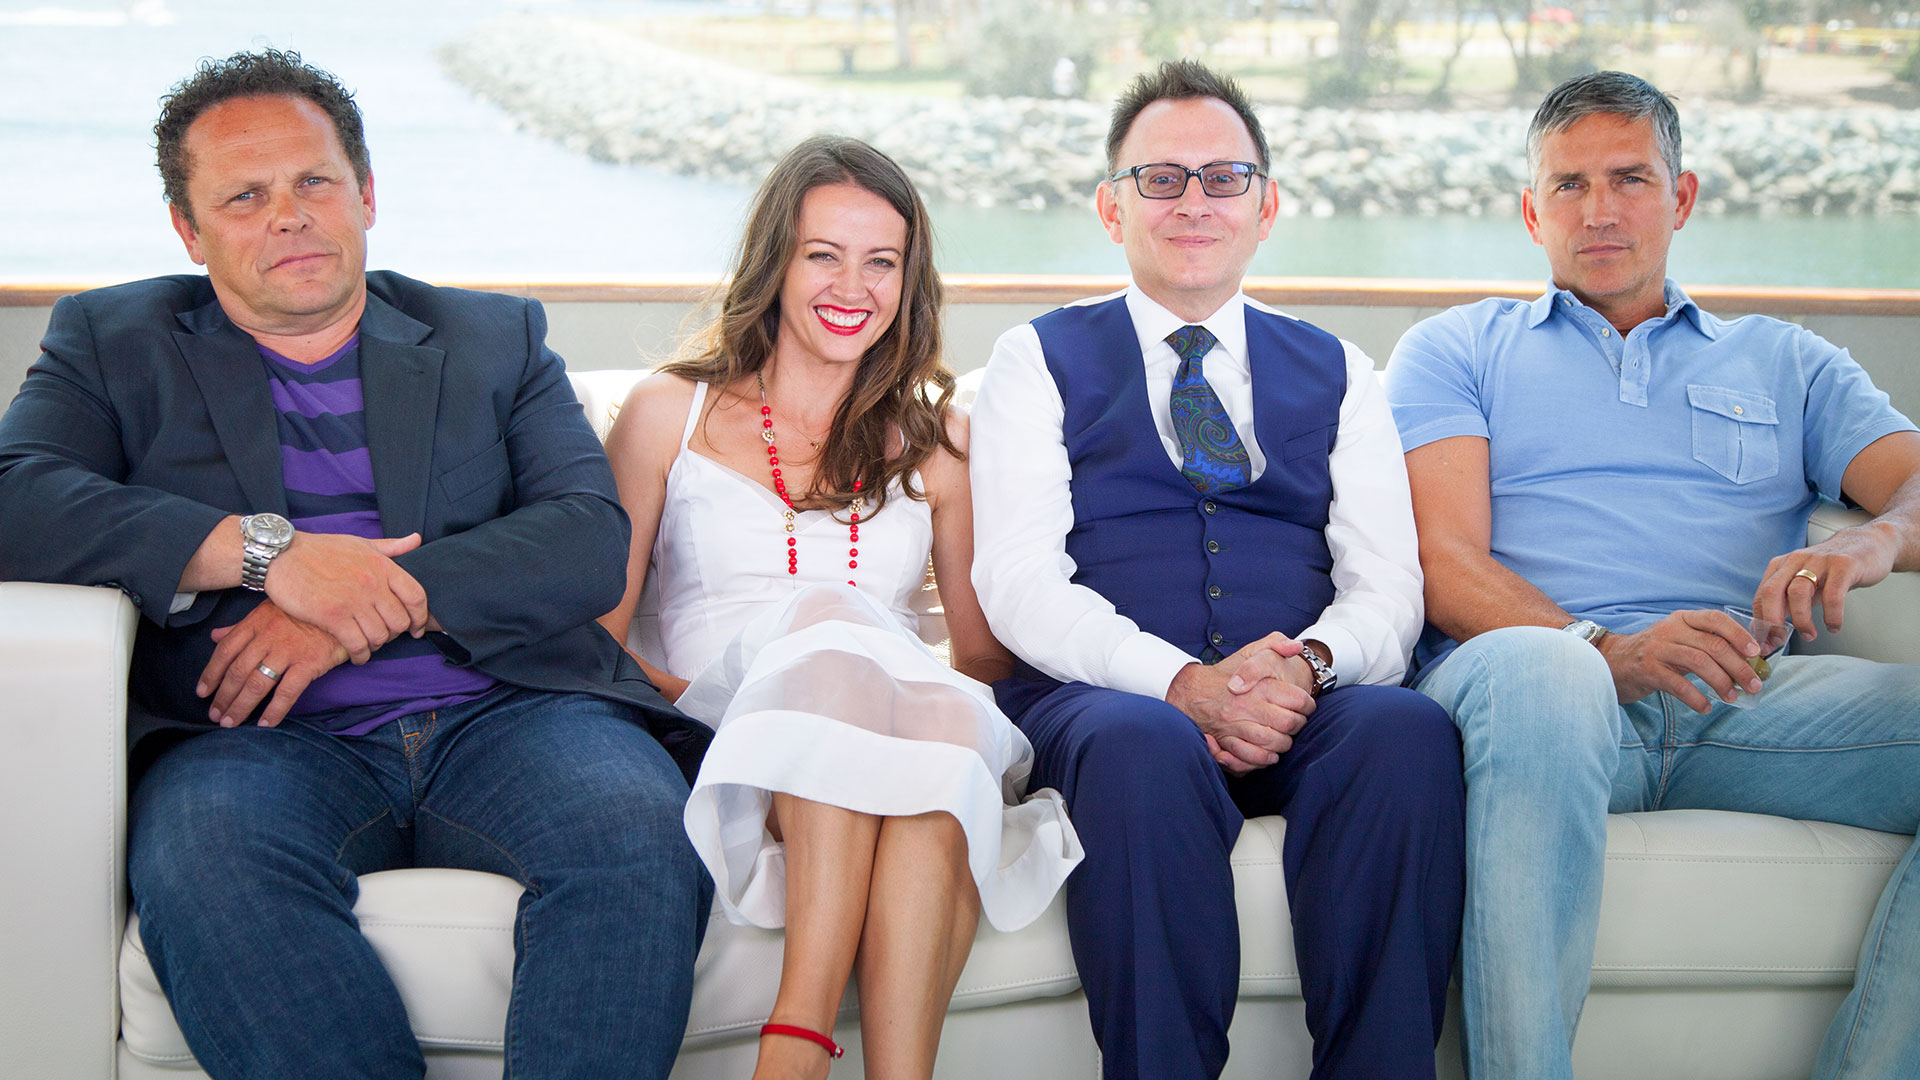 The Person of Interest cast